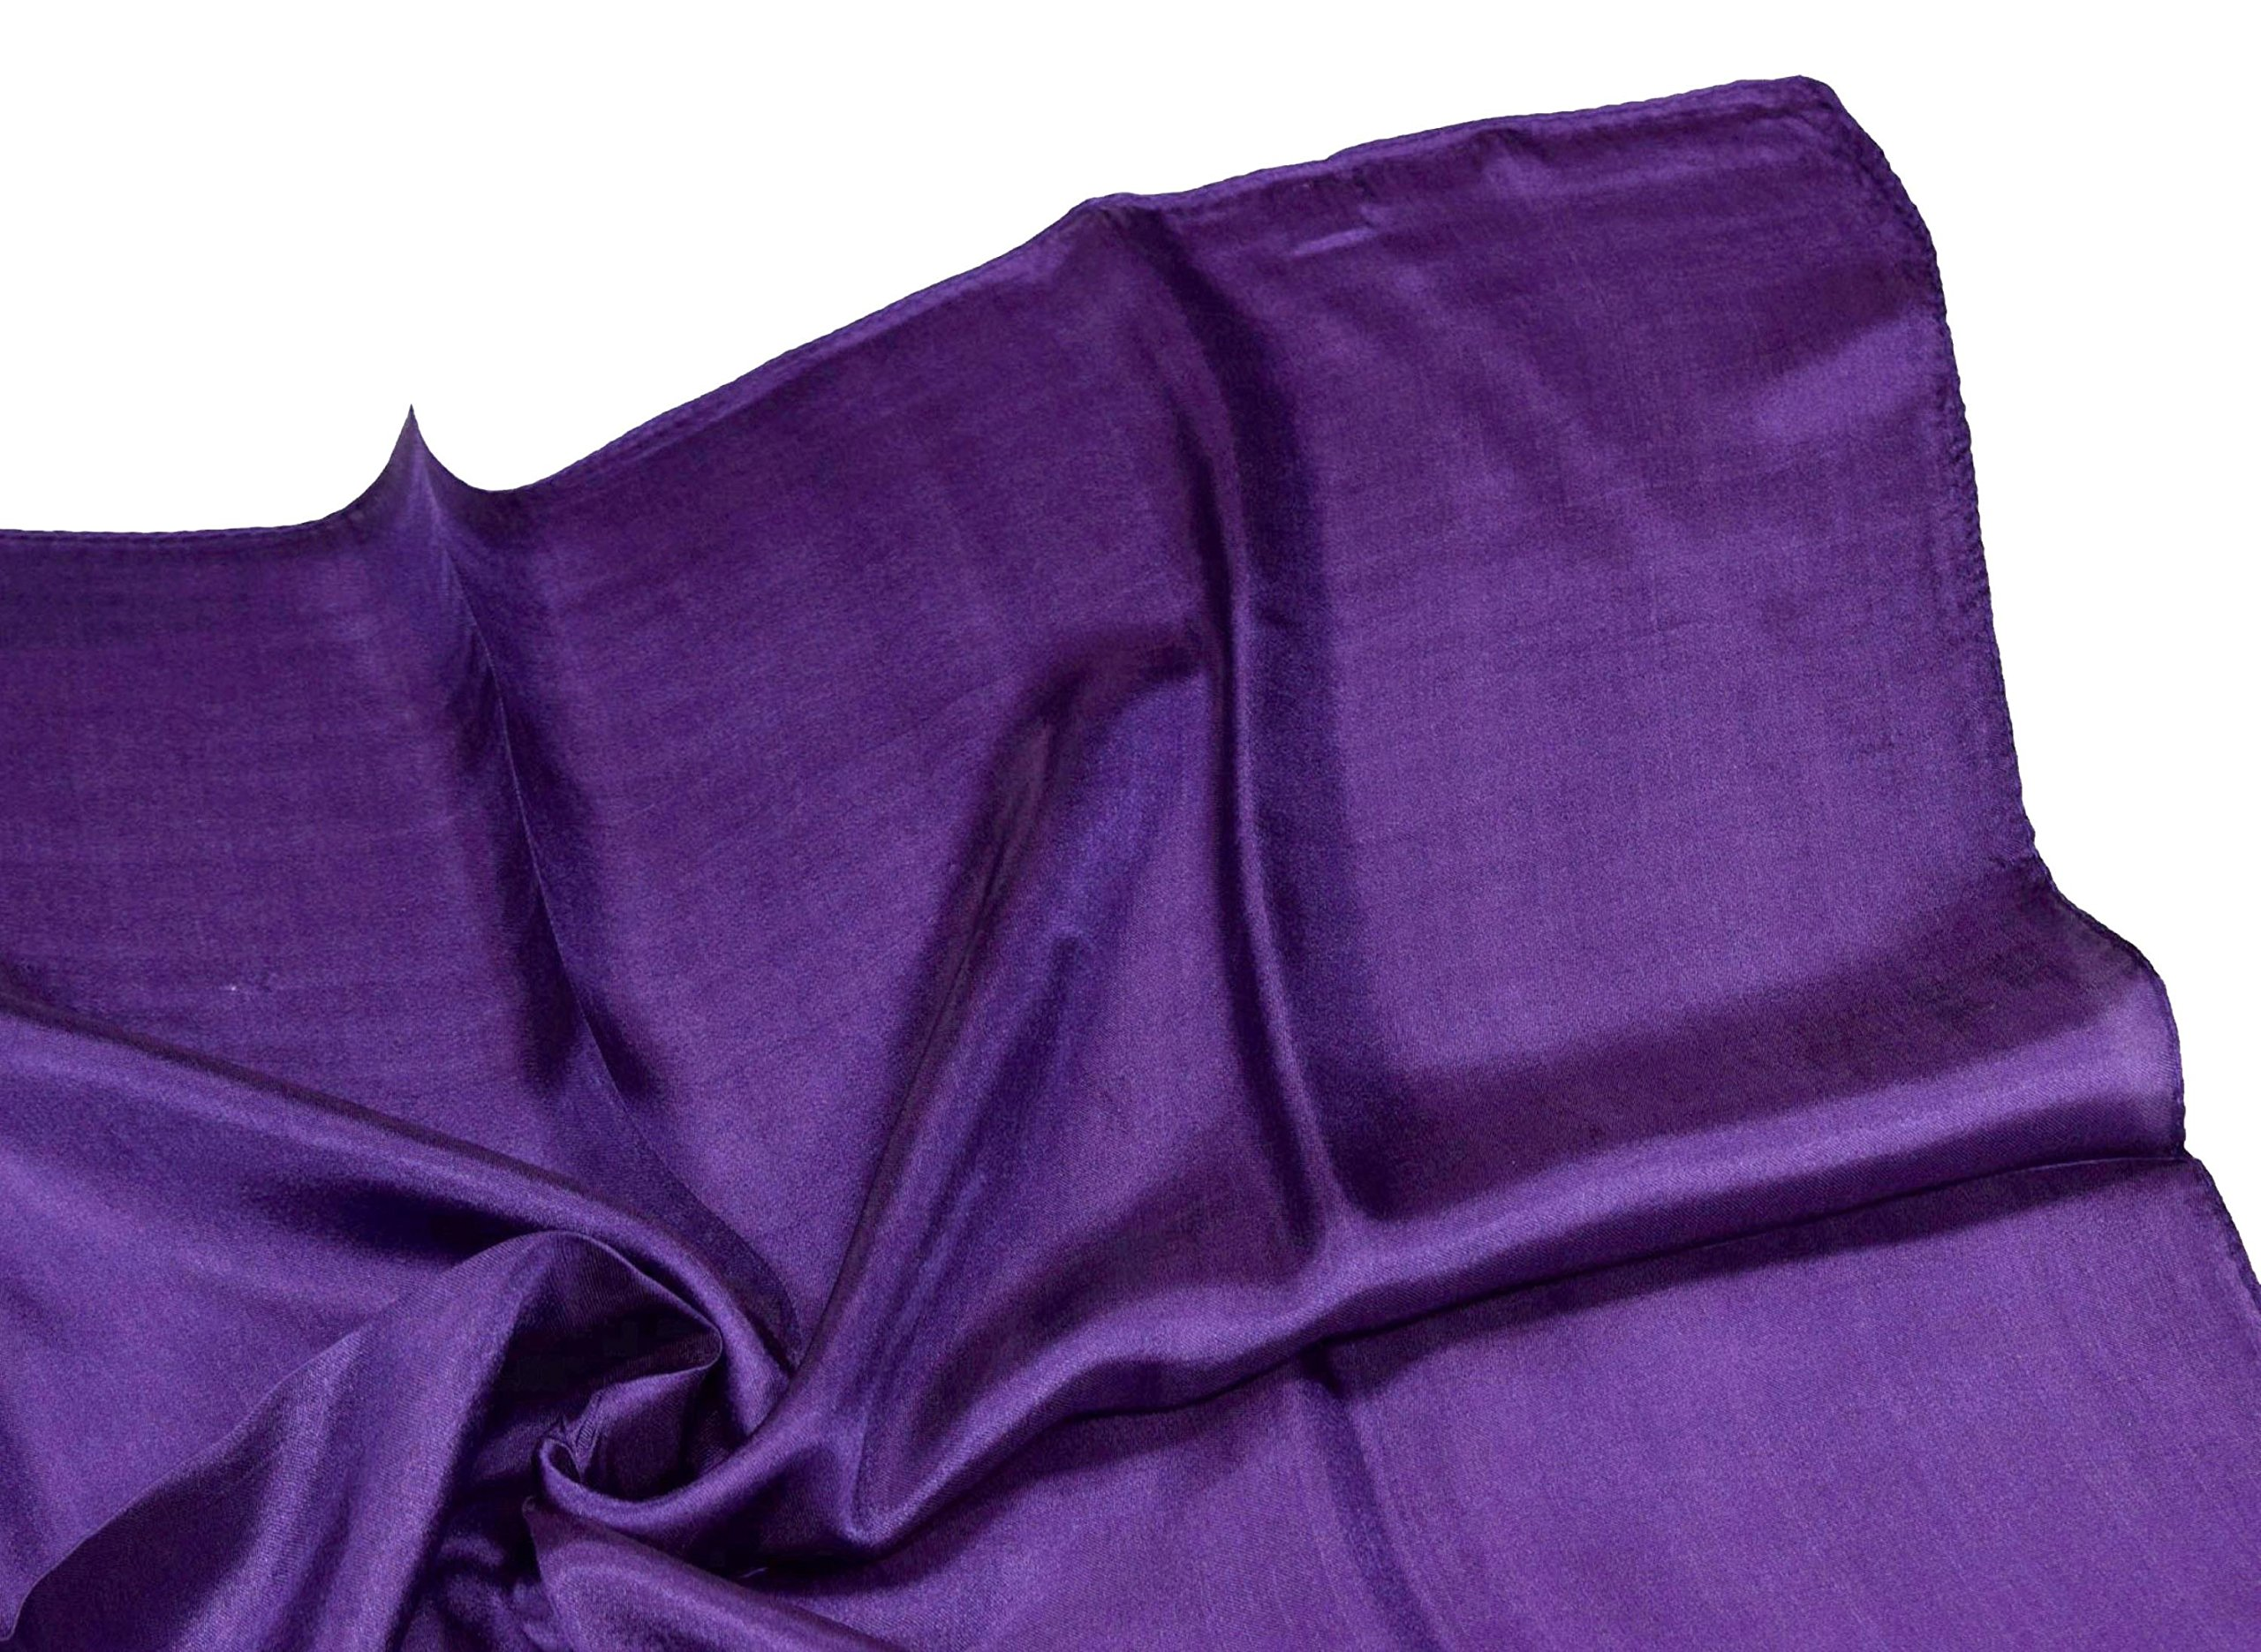 Deep Purple Small Fine Silk Square Scarf by Bees Knees Fashion (Image #3)